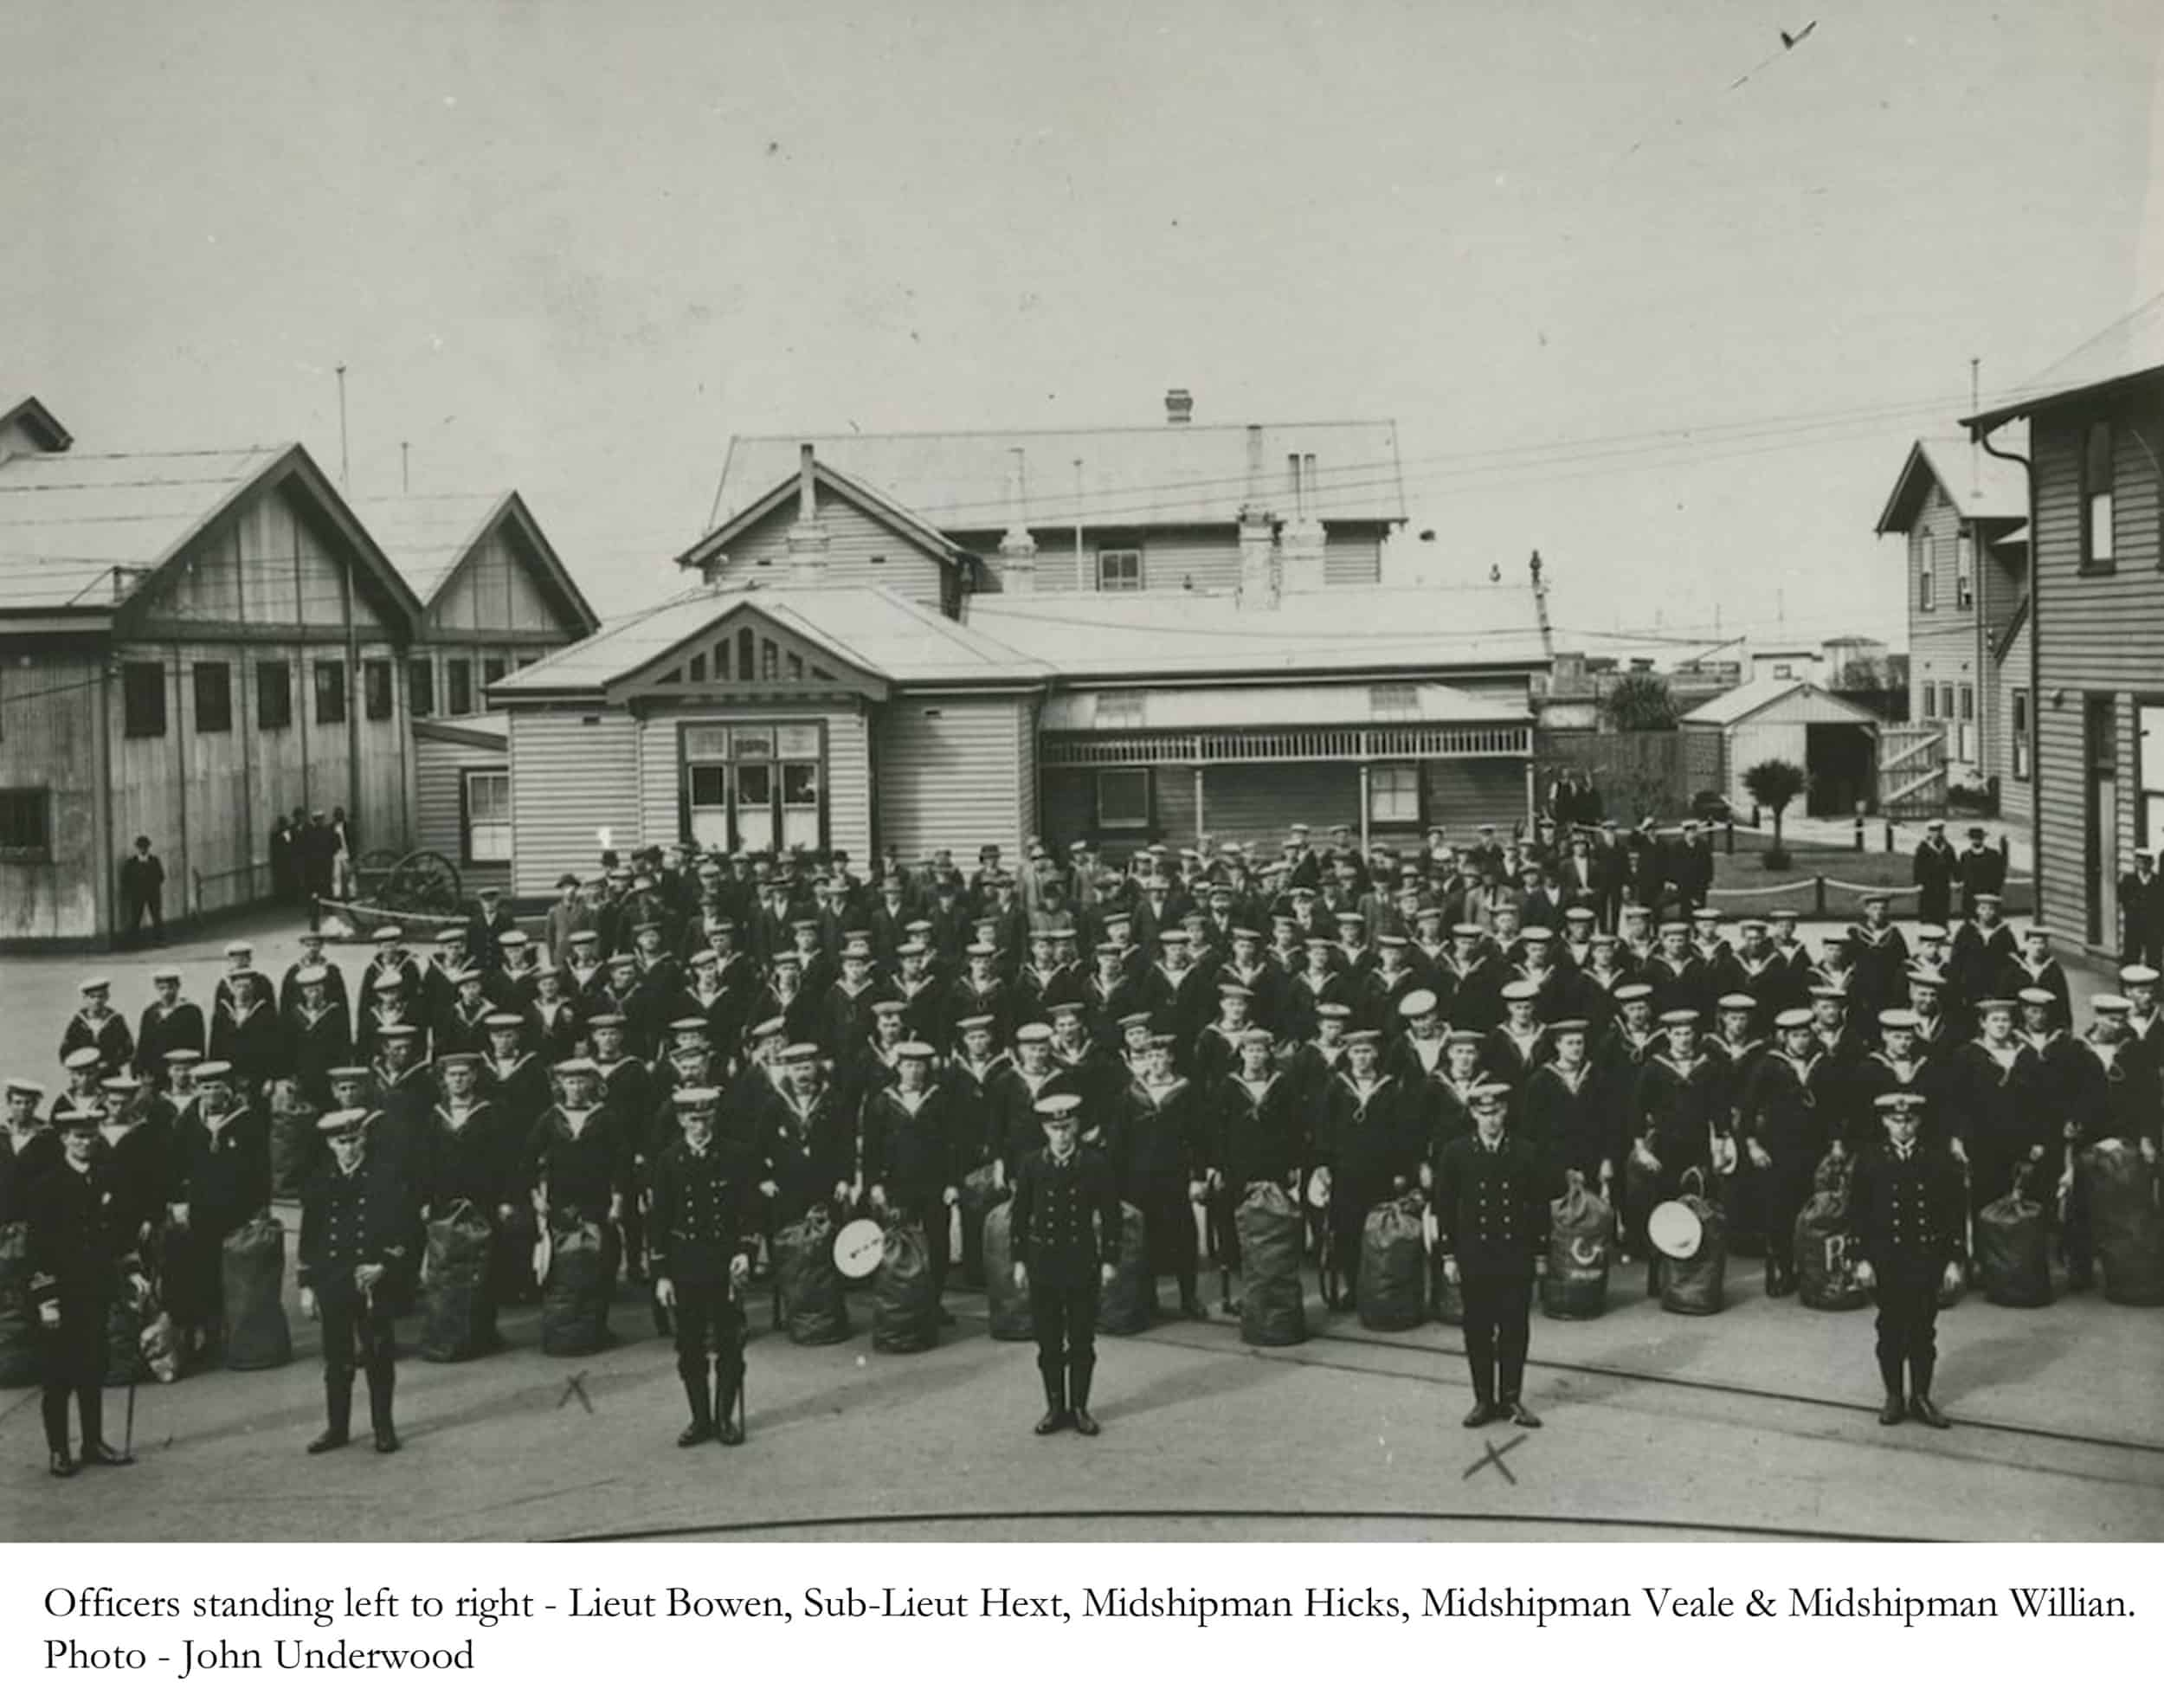 Officers and men in the Parade Ground of the Williamstown Naval Base